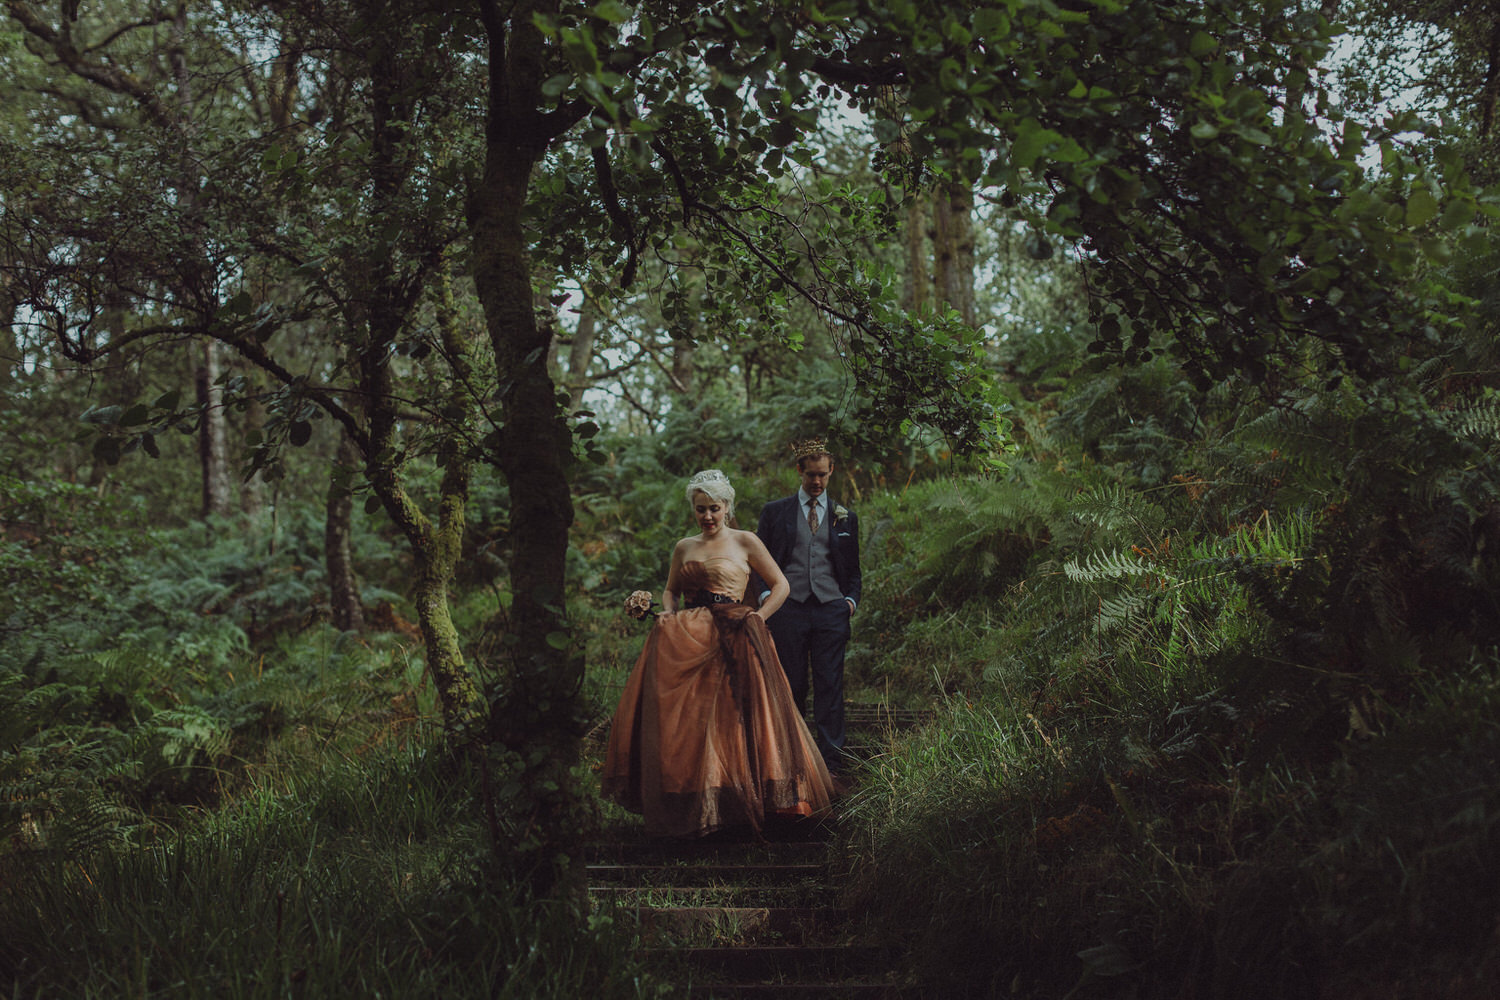 David & Victoria's wedding in Inchcailloch Island, Loch Lomond | One Devonshire Gardens, Glasgow - 12th September 2015, Scotland